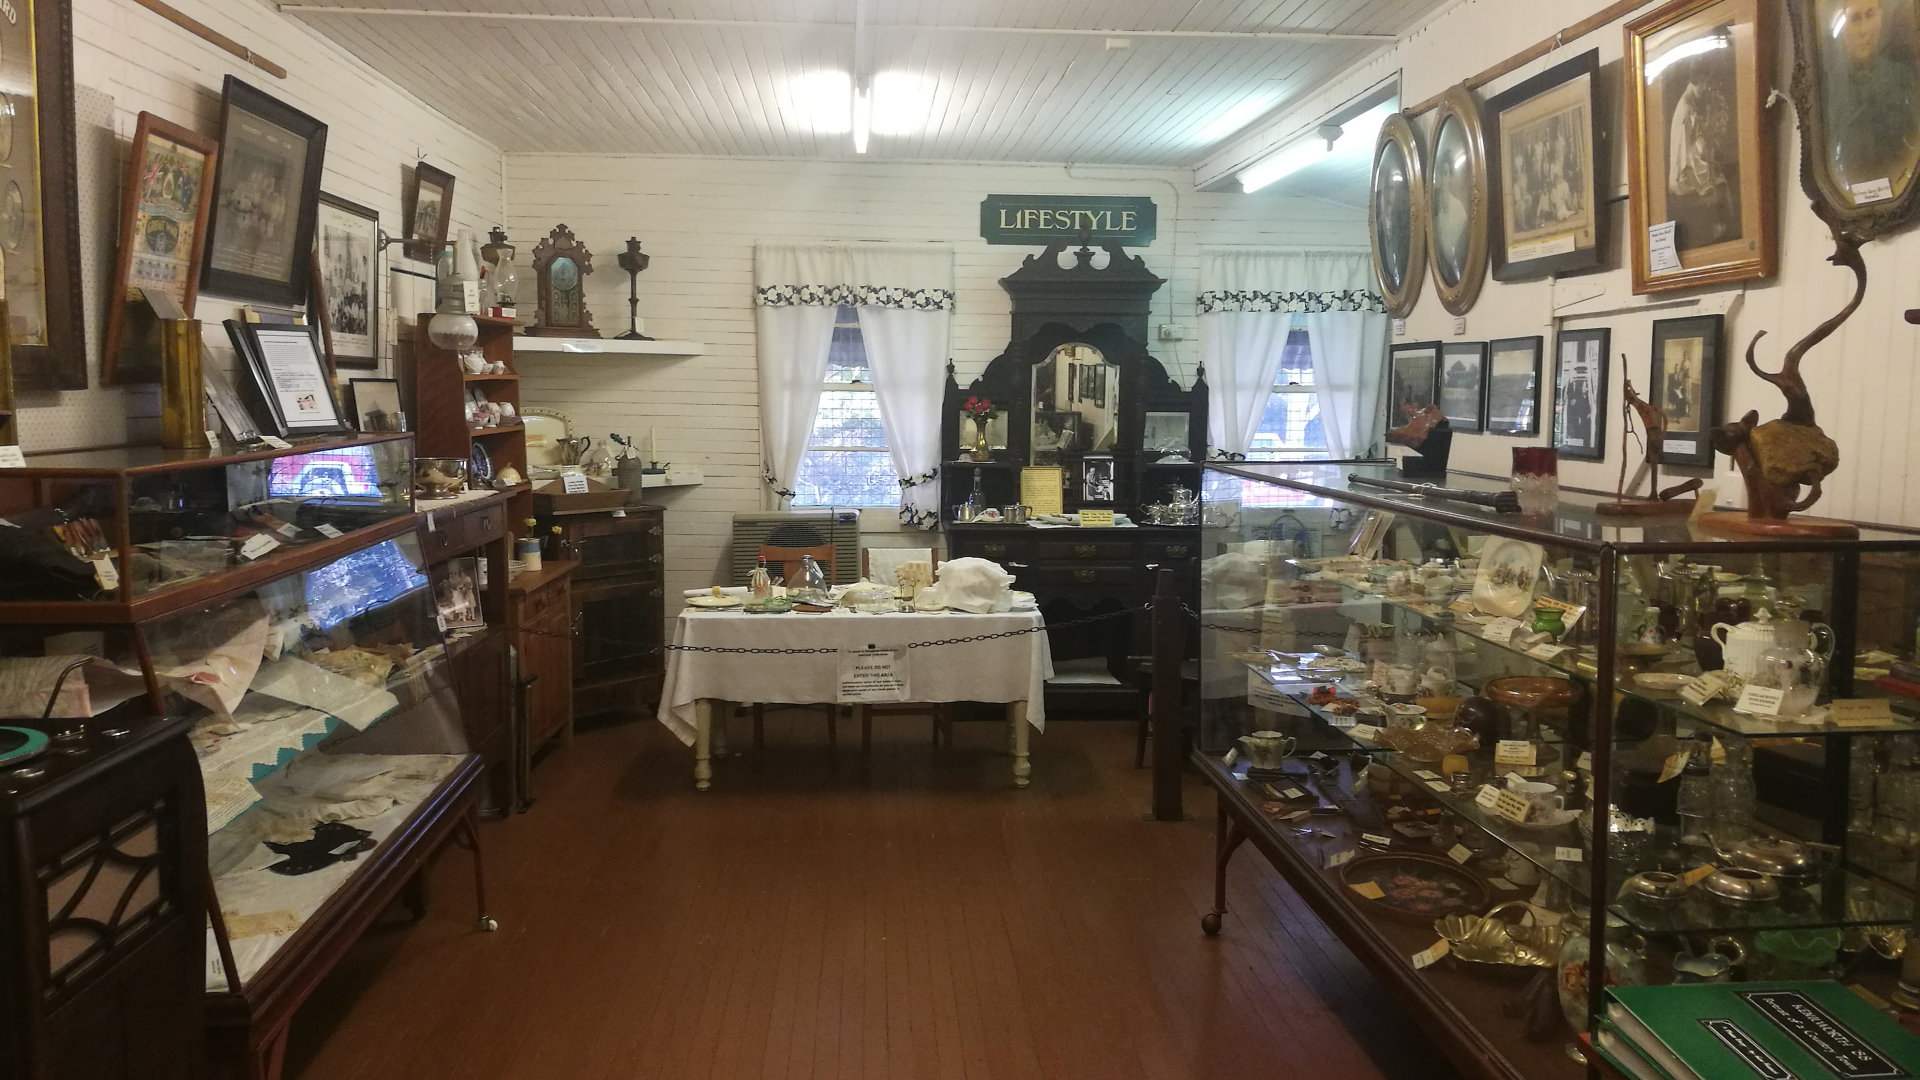 Displays inside the Kenilworth Historical Museum, a volunteer run museum capturing the history and heritage of the Kenilworth area